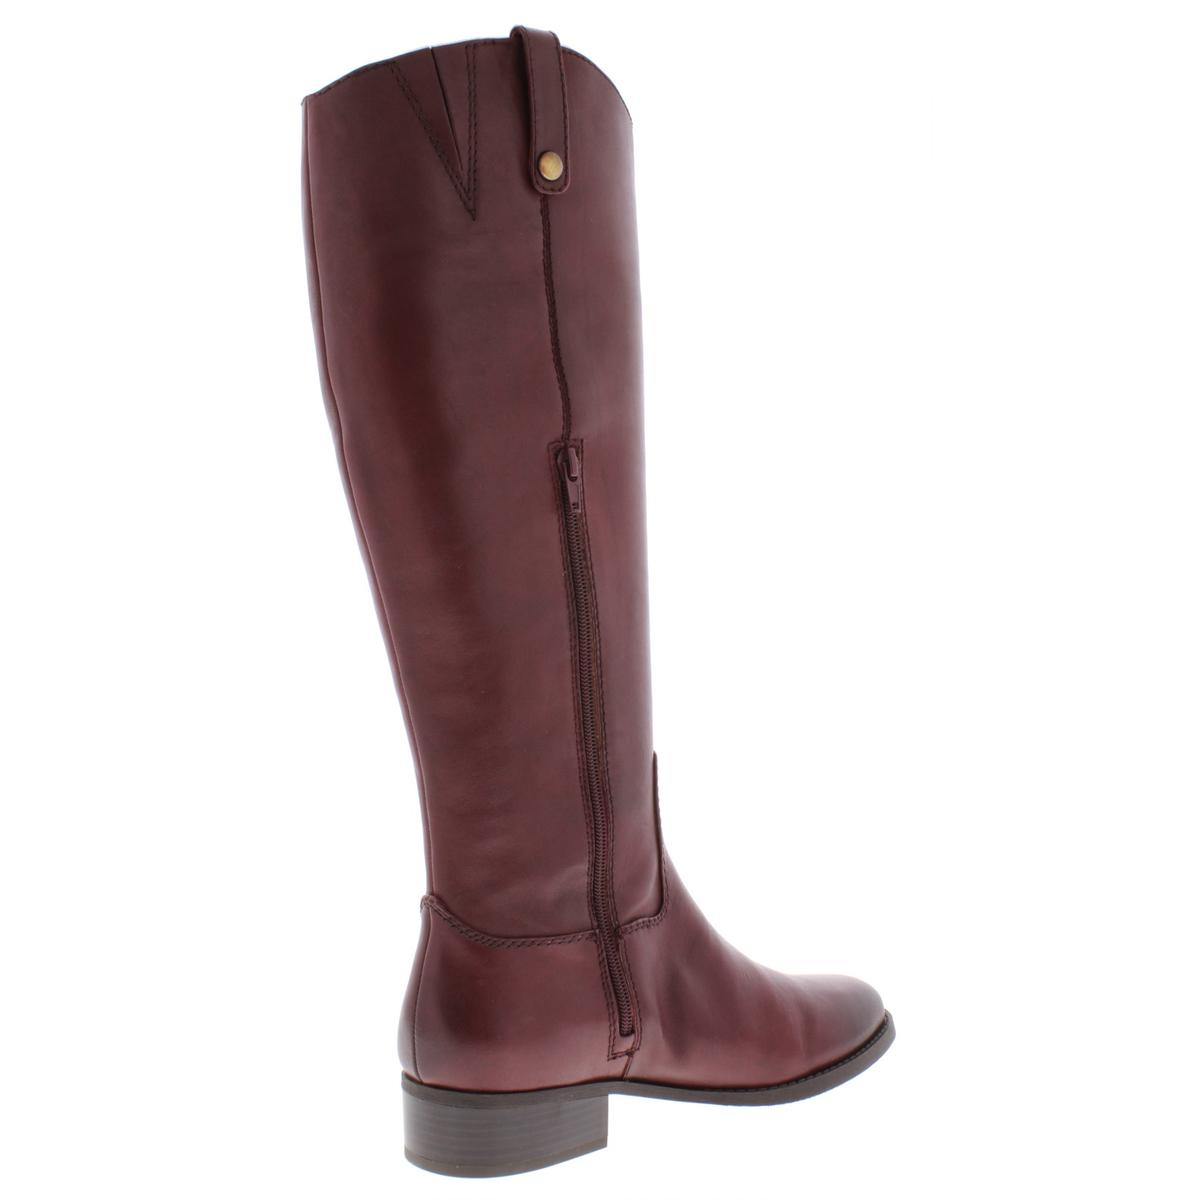 INC-Womens-Fawne-Leather-Knee-High-Tall-Riding-Boots-Shoes-BHFO-5020 thumbnail 15